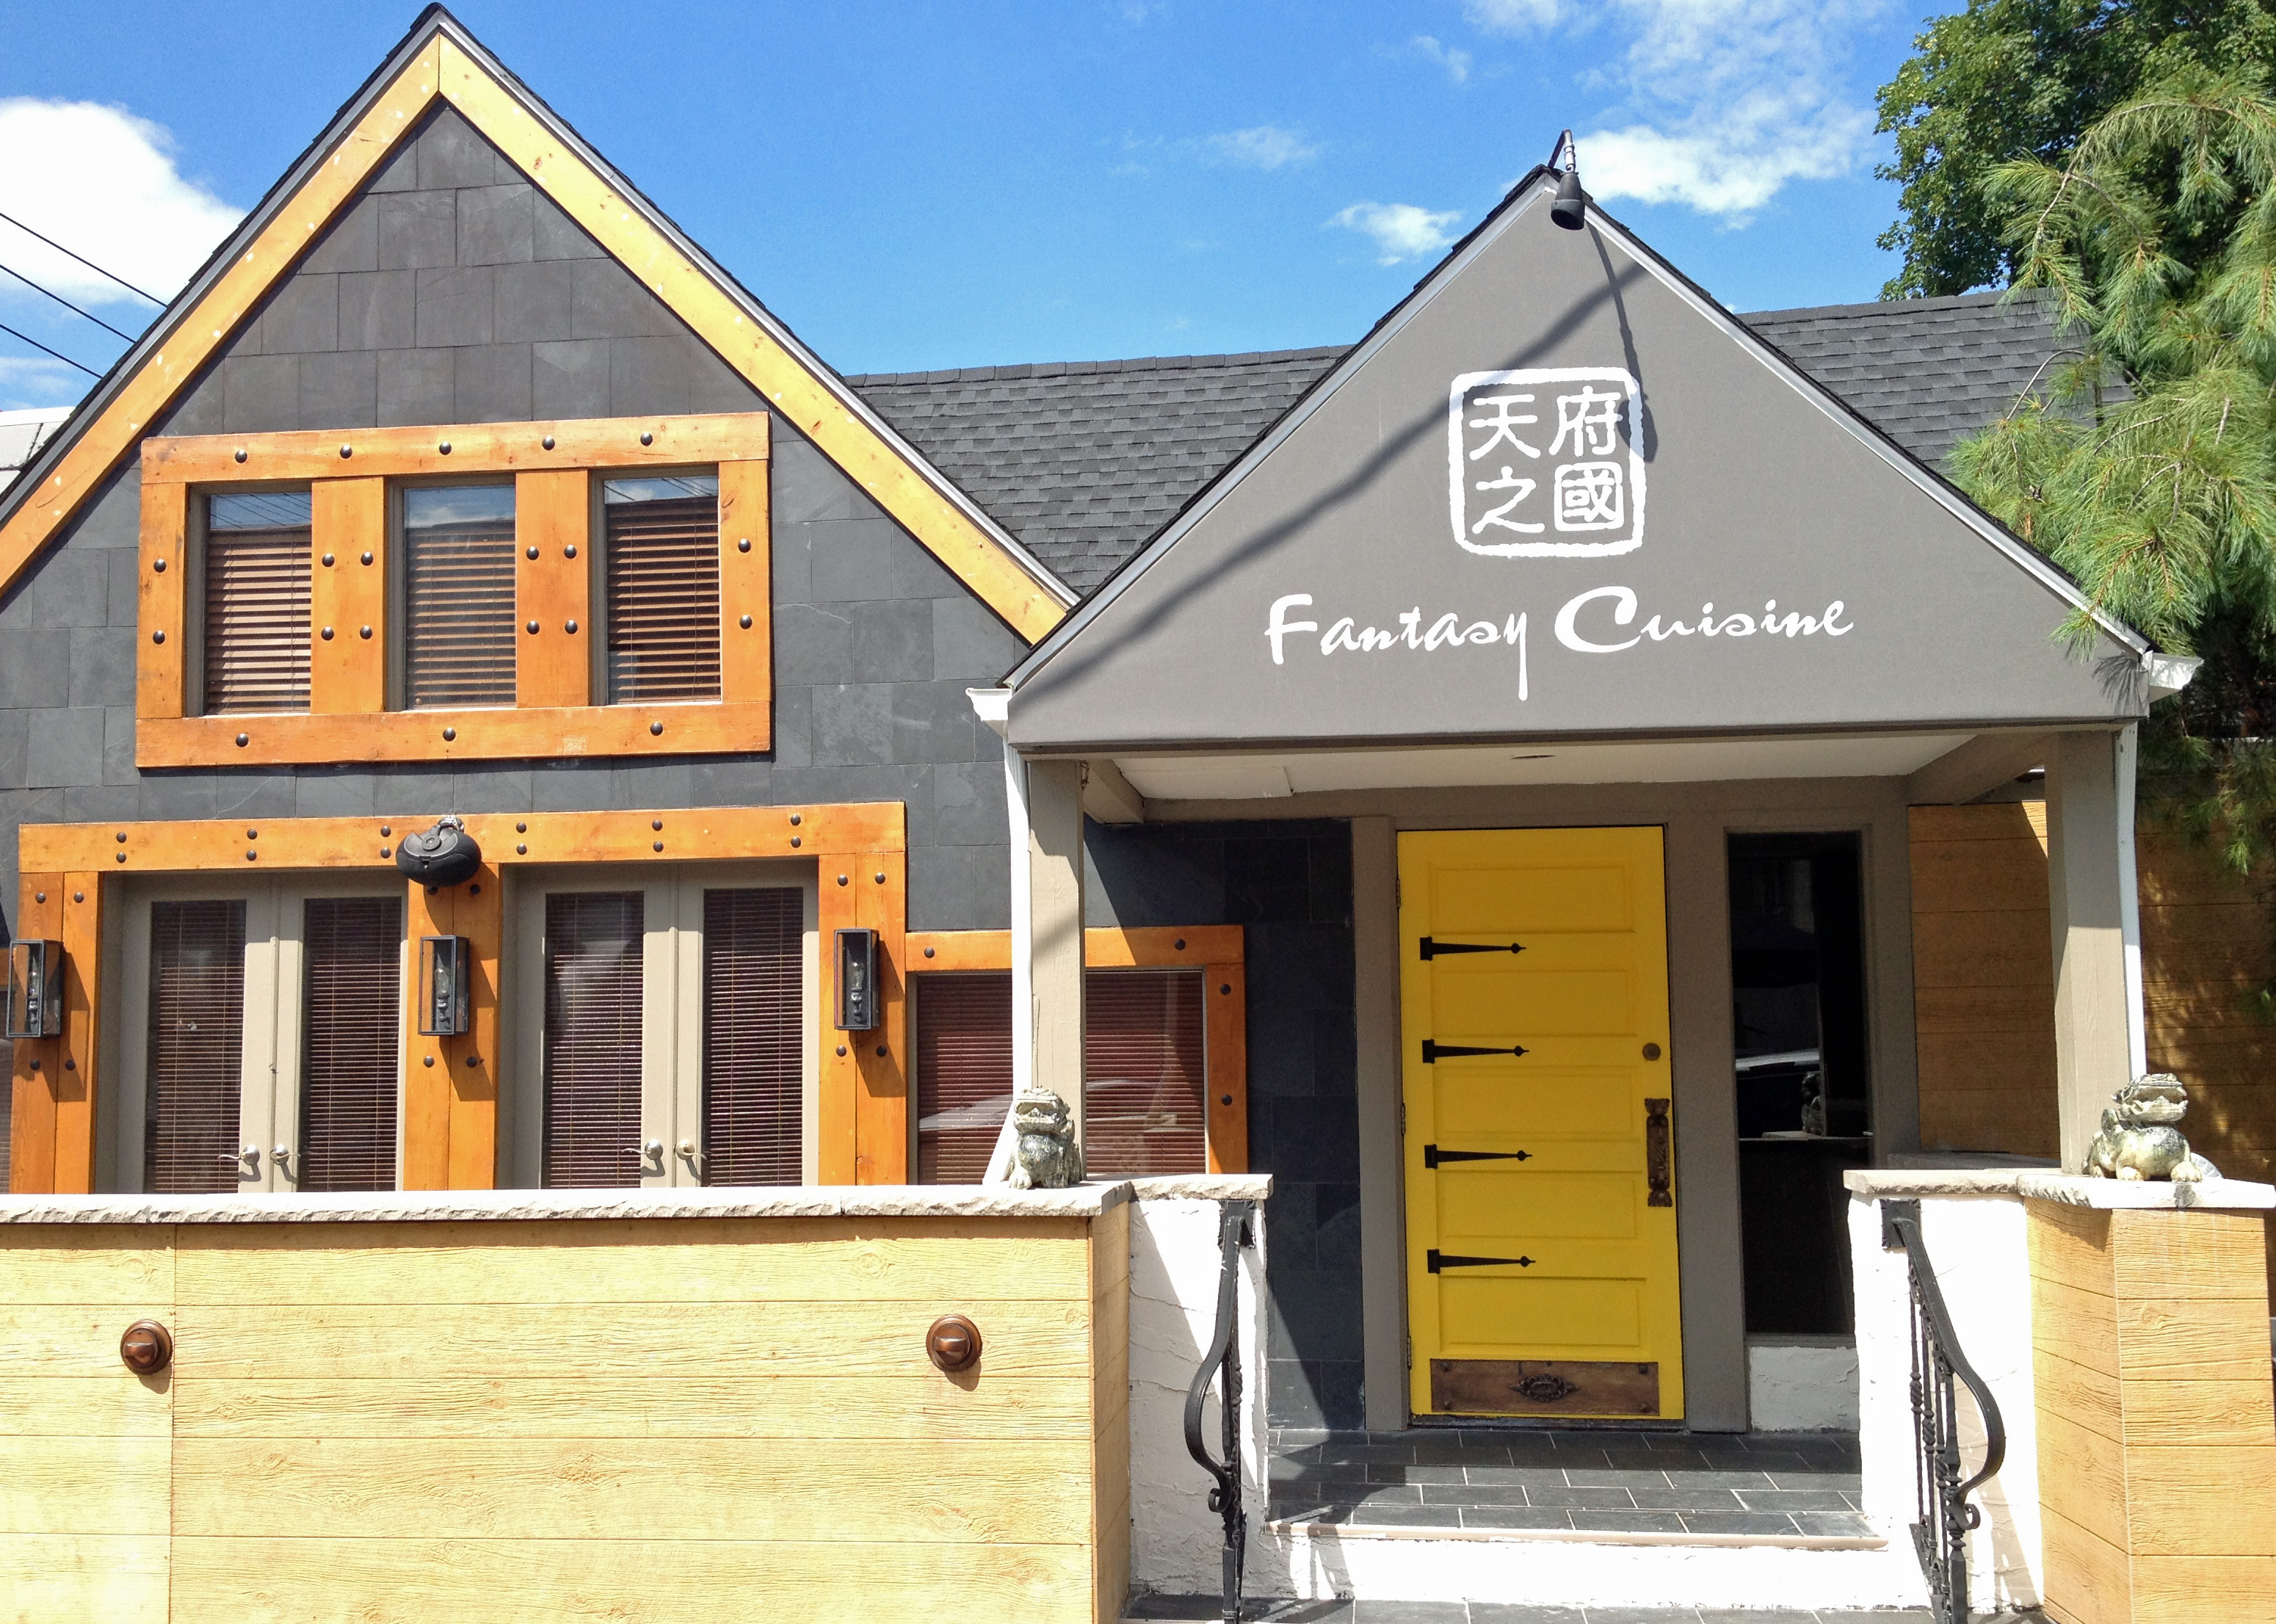 Fantasy Cuisine, serving classic Chinese dishes, opens today on Central Avenue in Hartsdale.